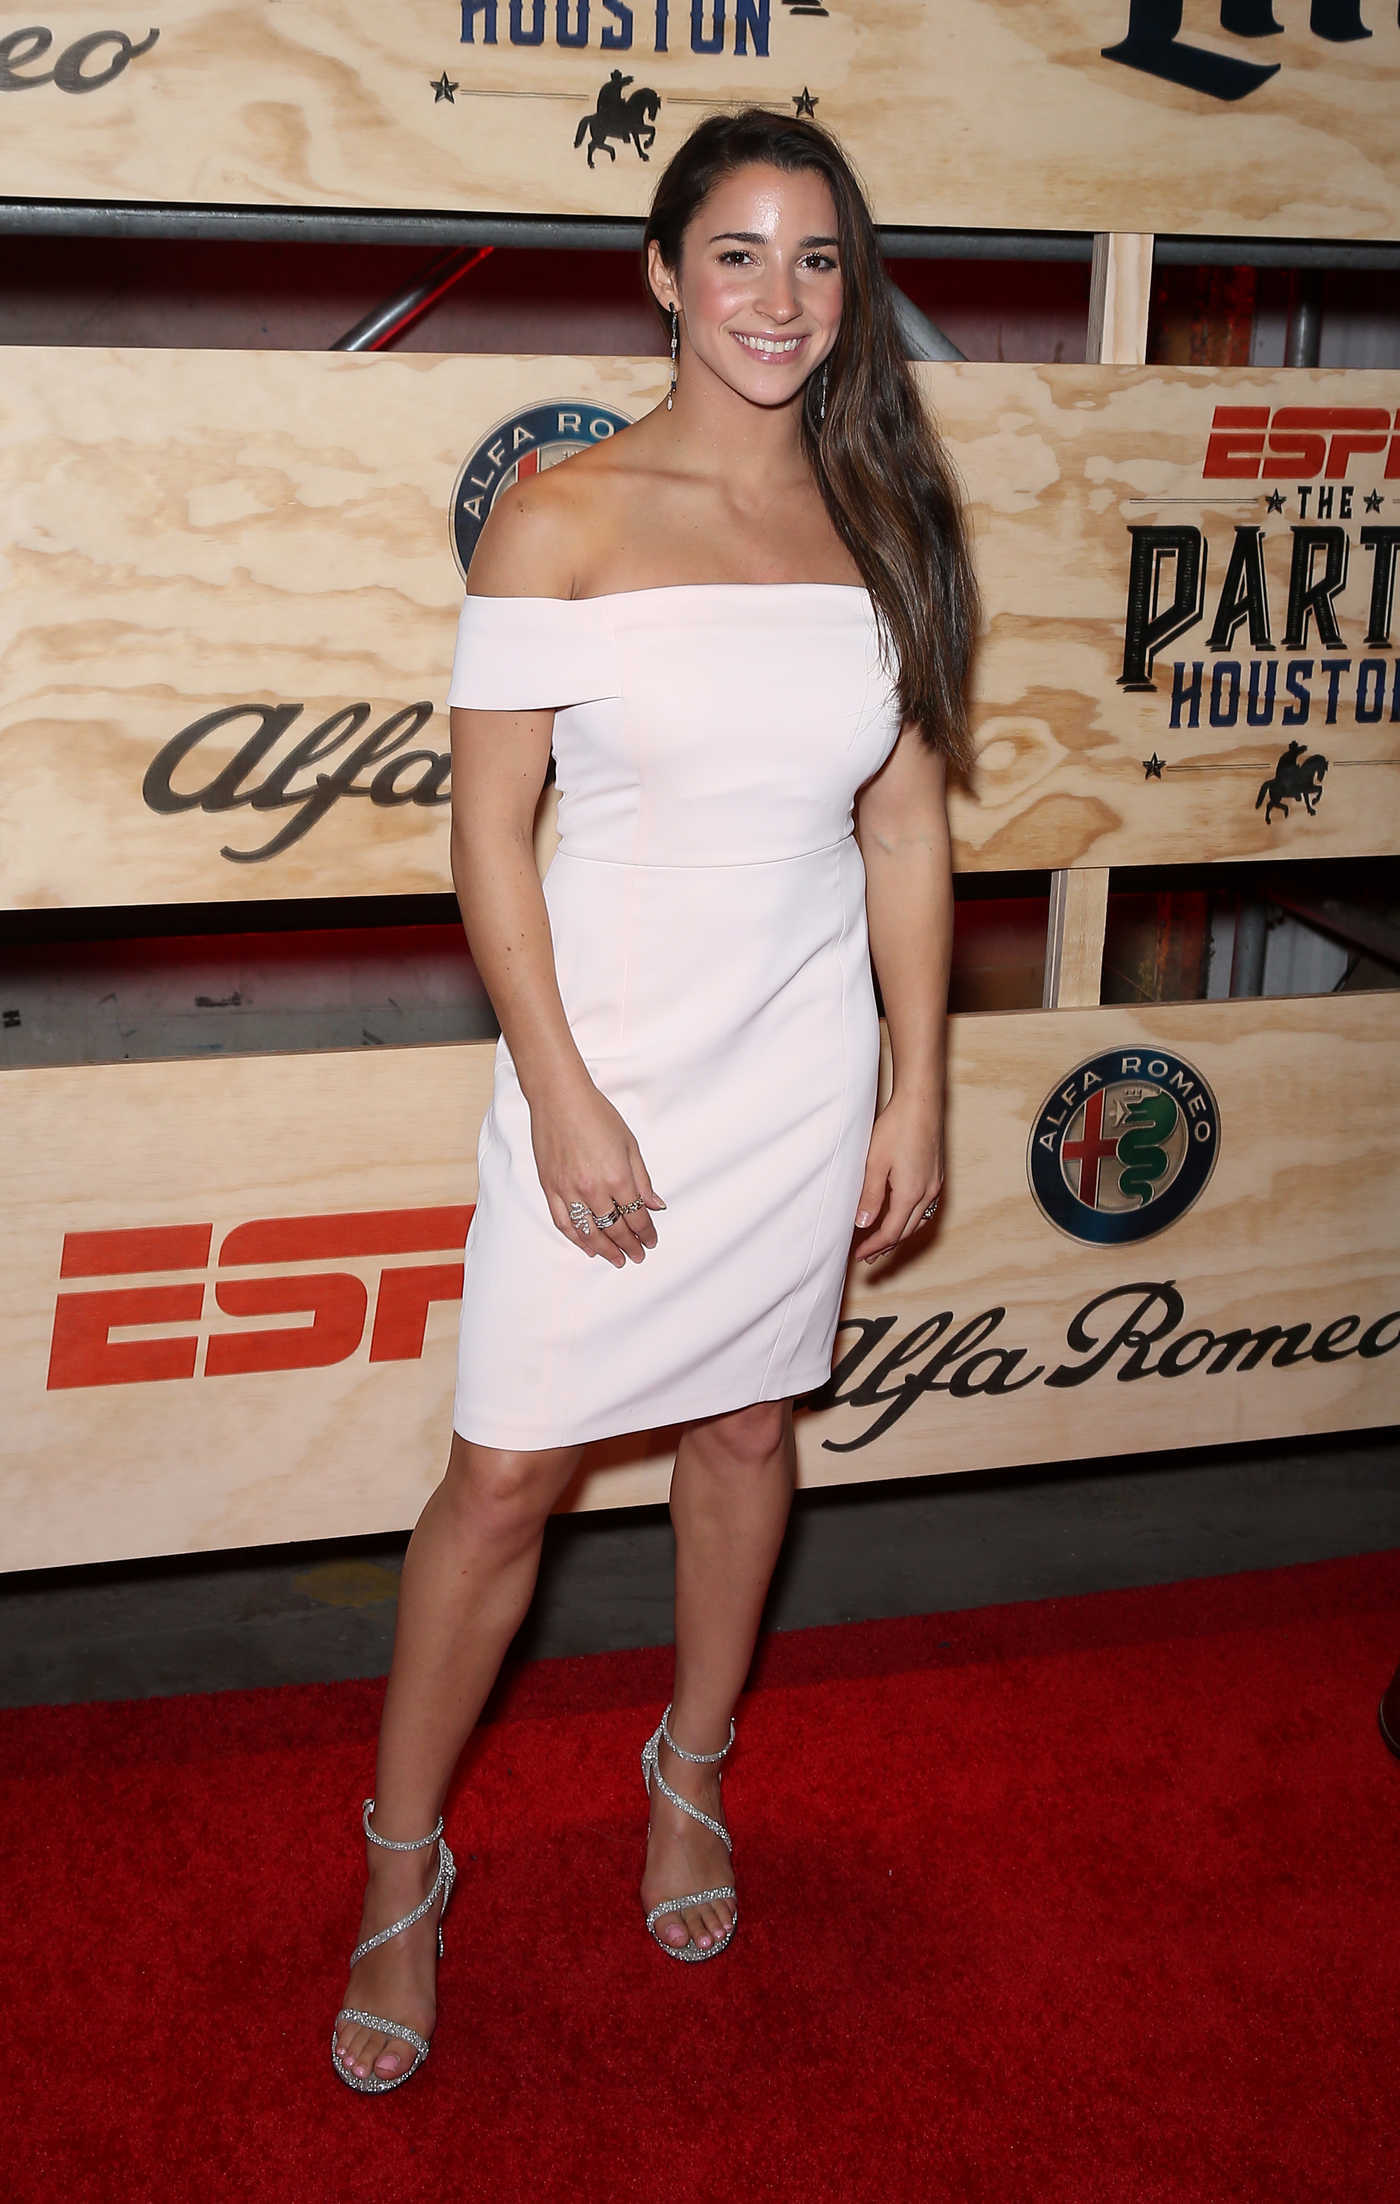 Aly Raisman at the 13th Annual ESPN The Party in Houston 02/03/2017